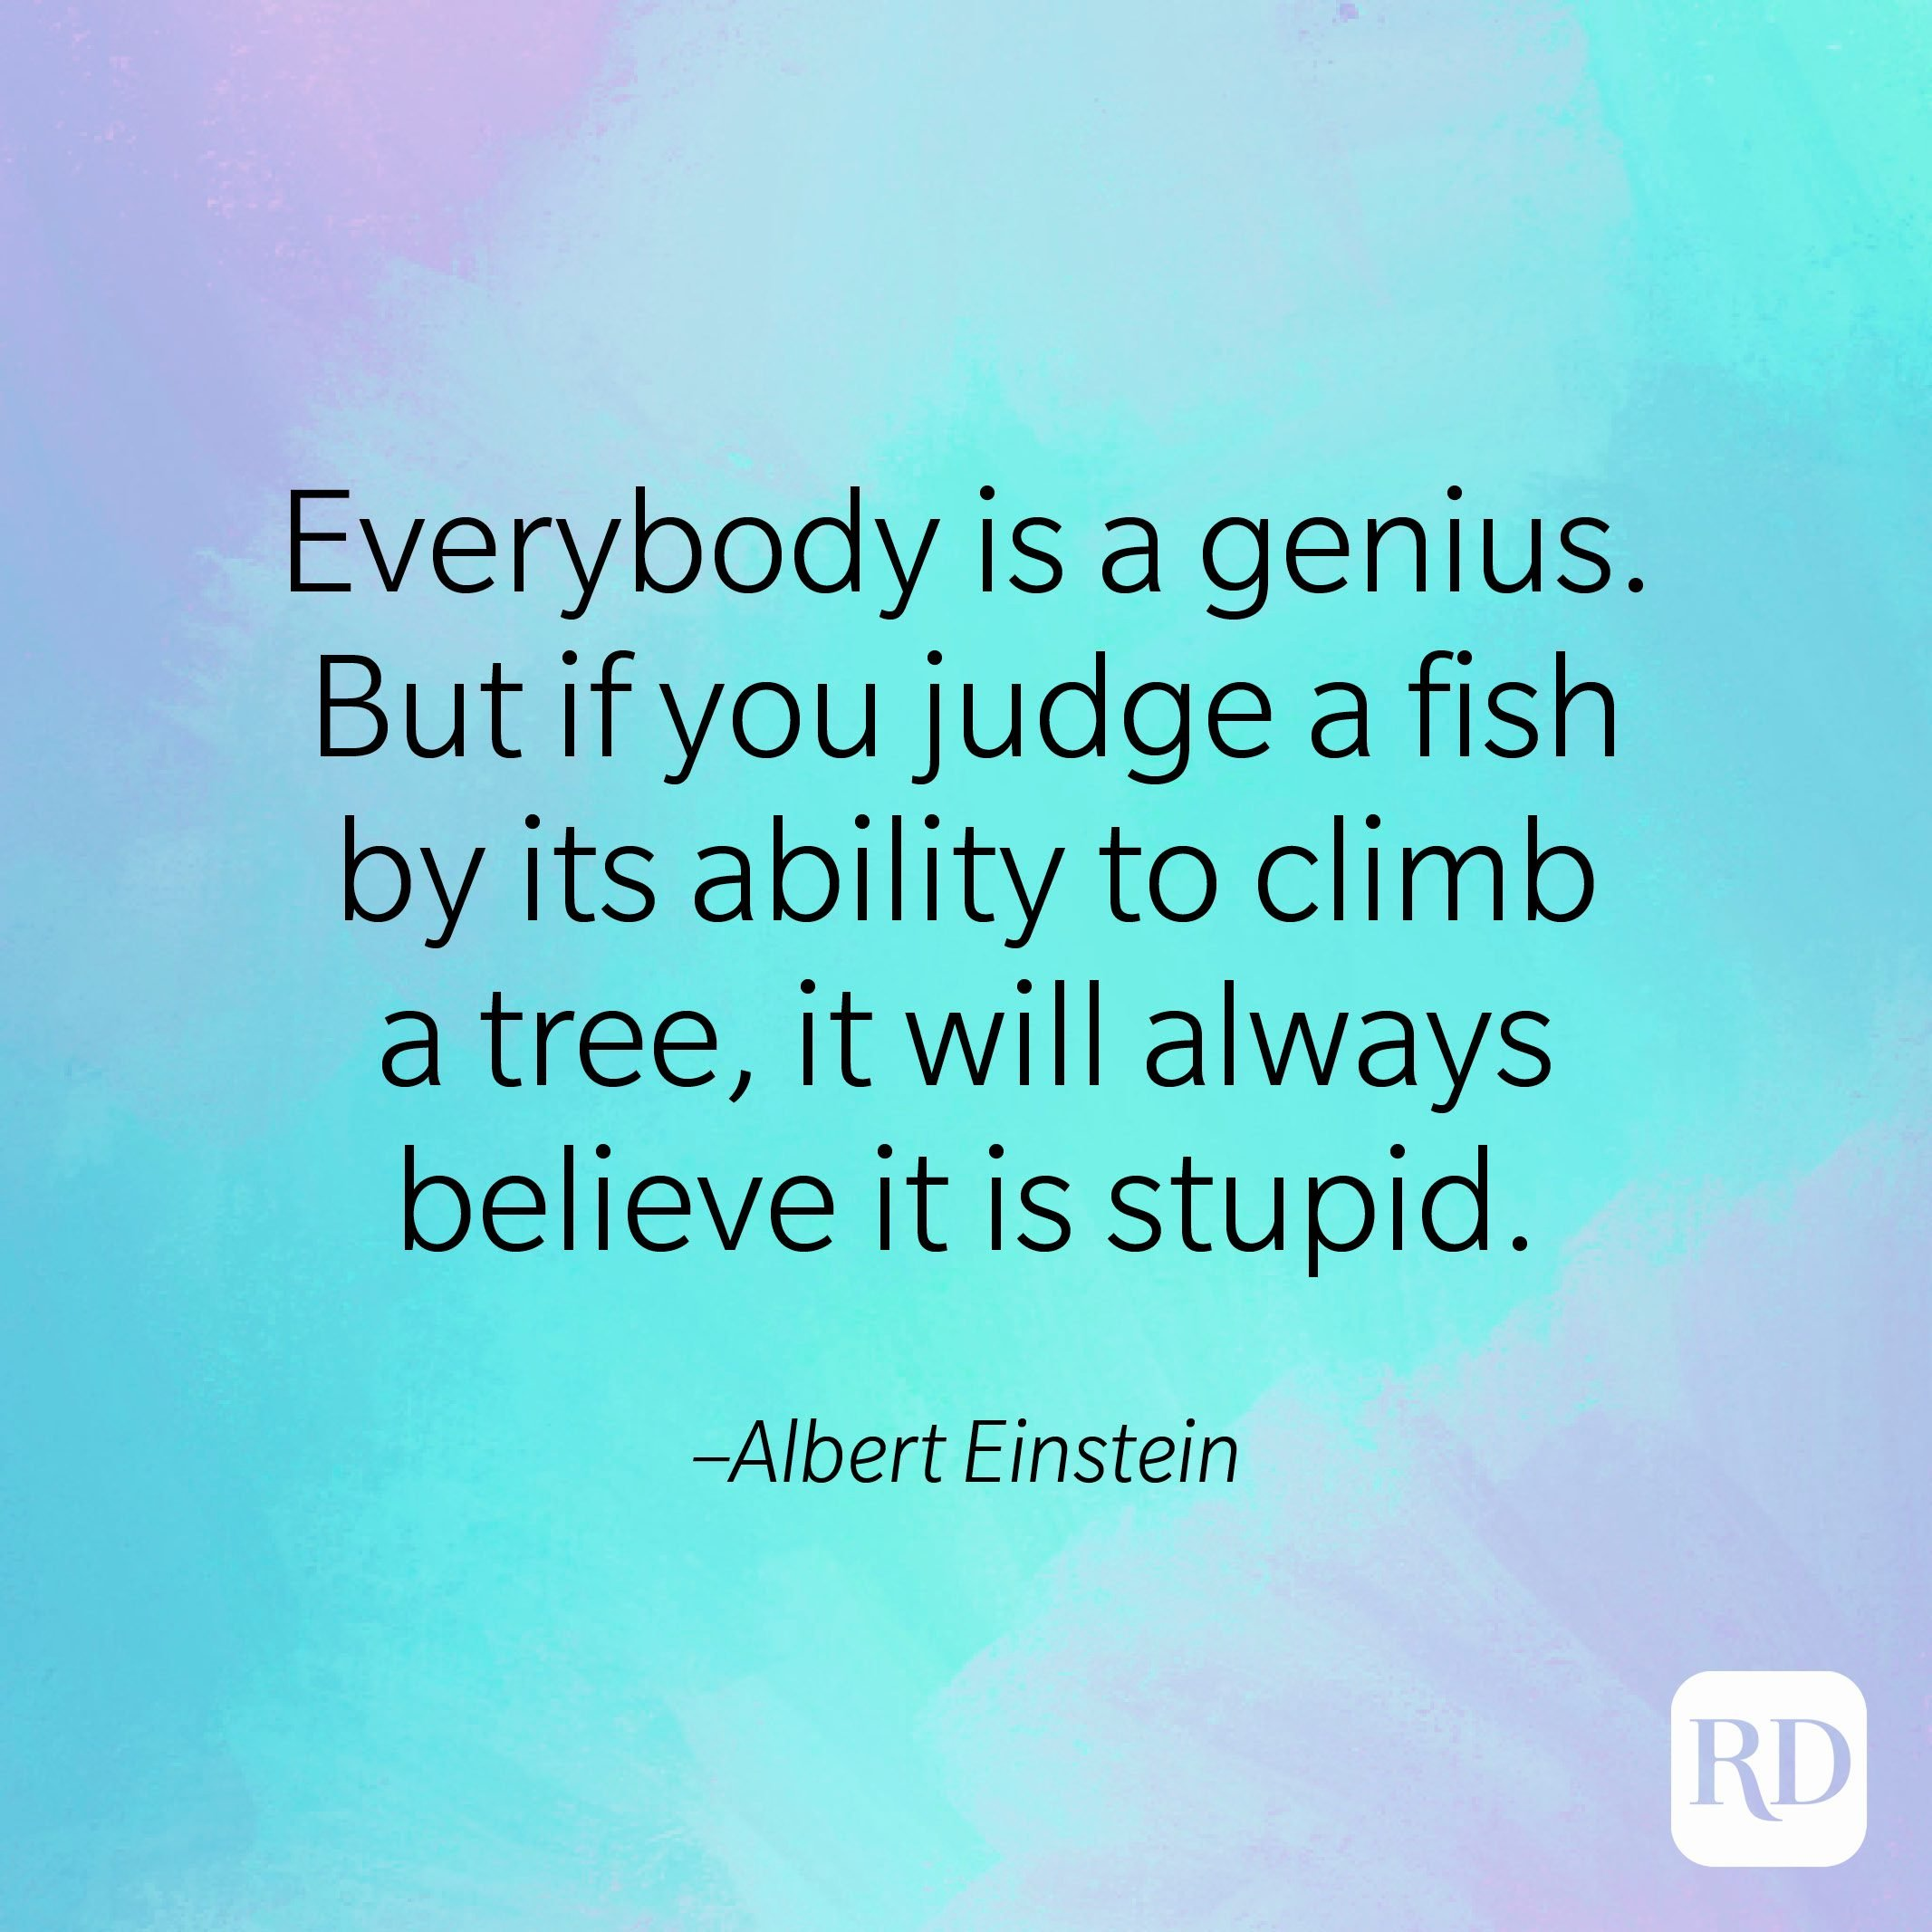 """""""Everybody is a genius. But if you judge a fish by its ability to climb a tree, it will always believe it is stupid."""" –Albert Einstein"""